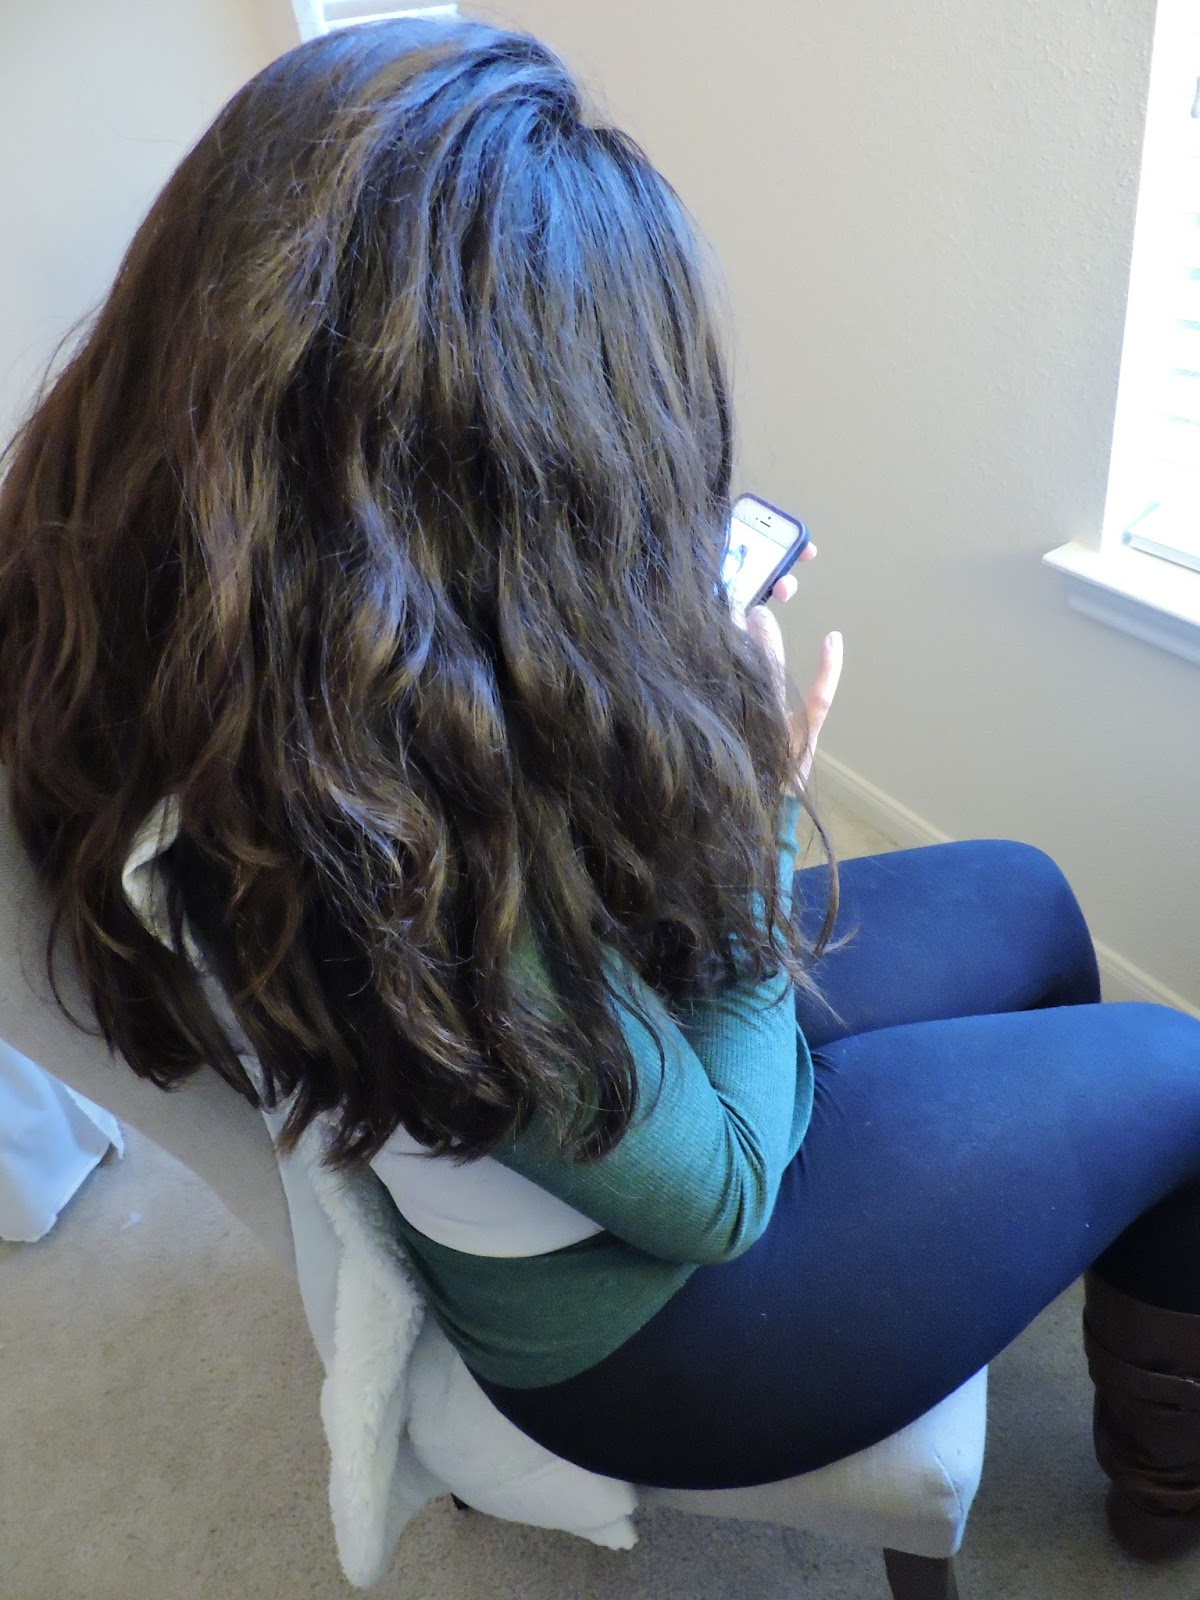 Big Loose Wavy Curls using the Curling Wand